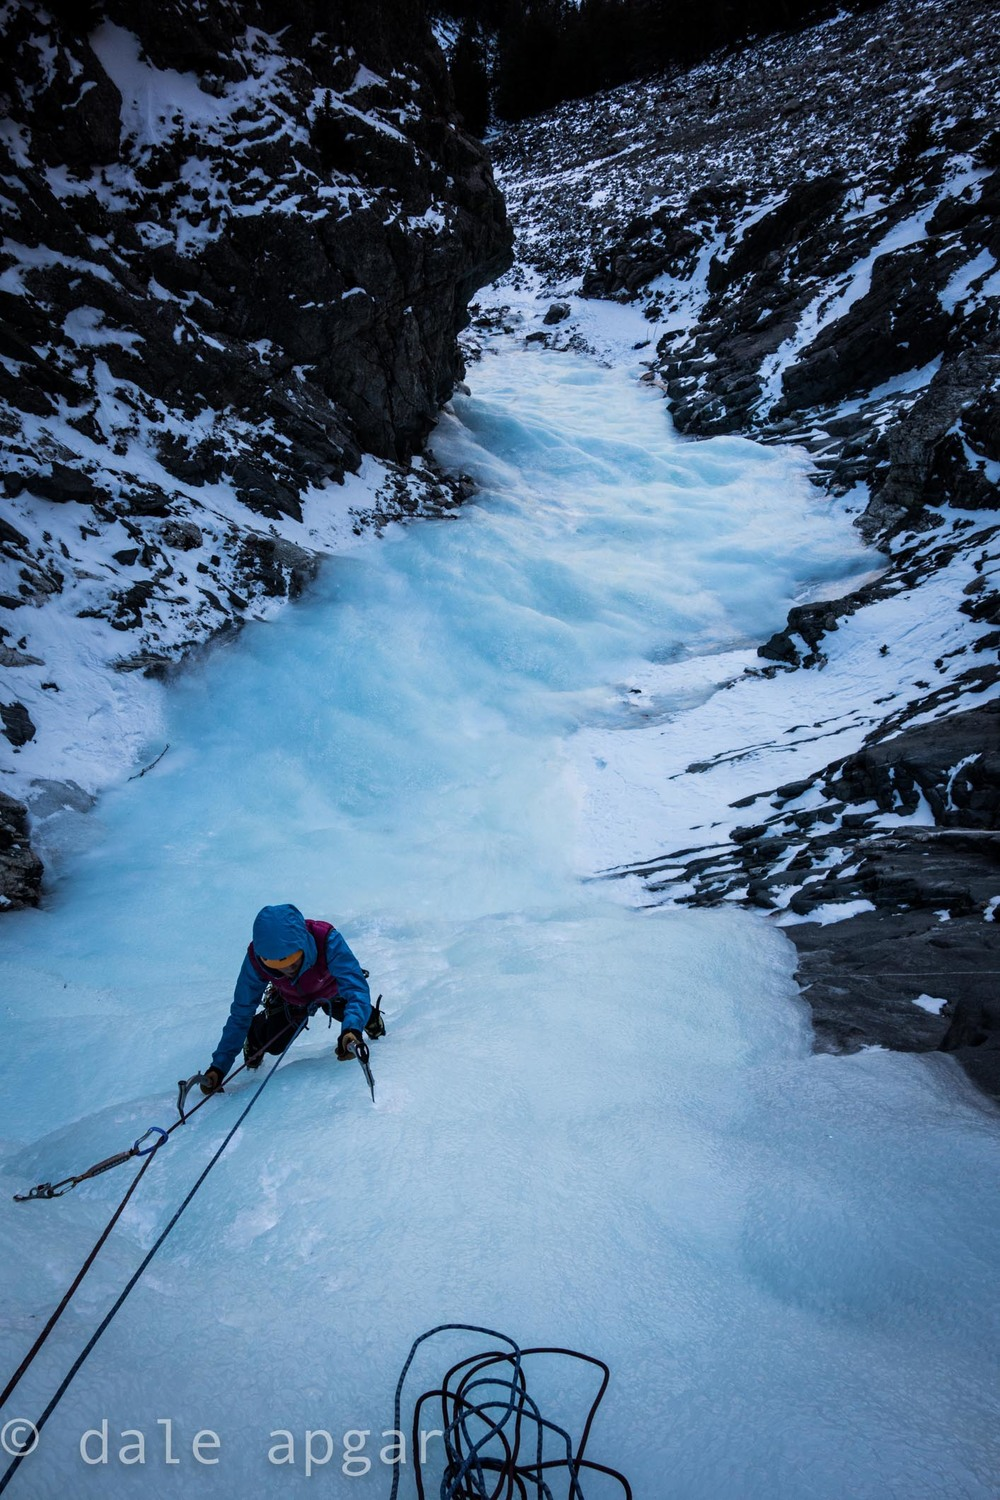 Lauren Smith exploring the backcountry ice flows on Montana's Beartooth Pass